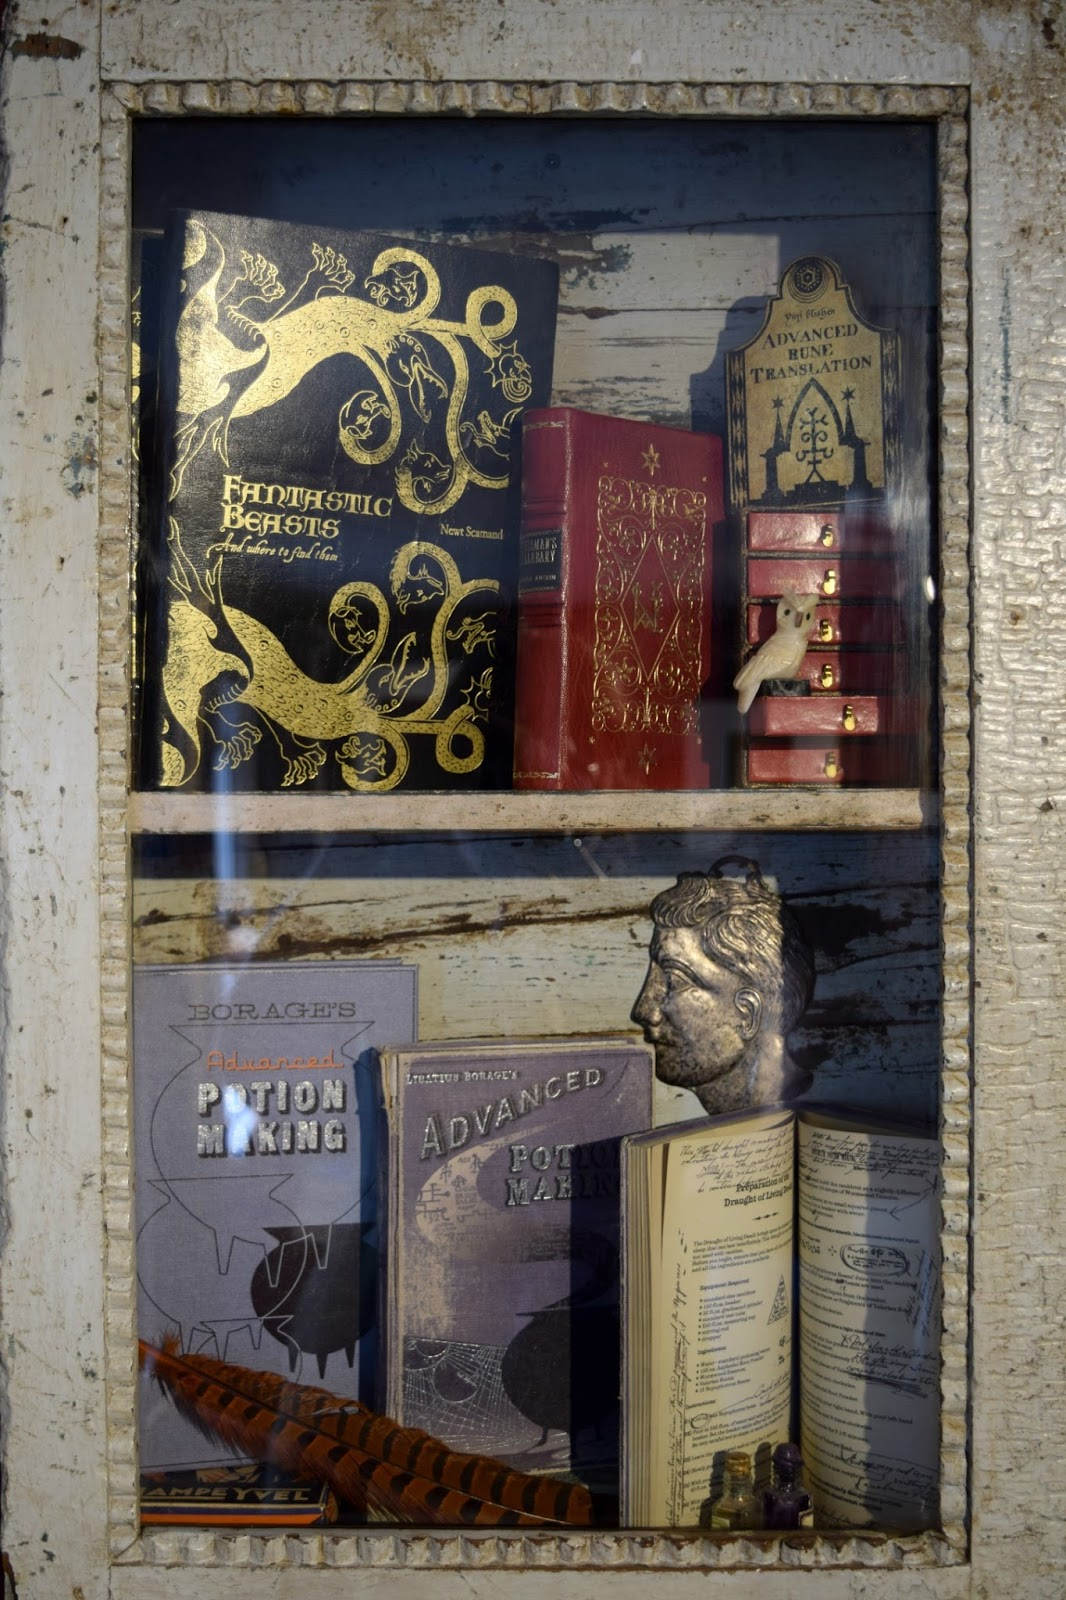 Fantastic Beasts and Where to find them at the house of minalima